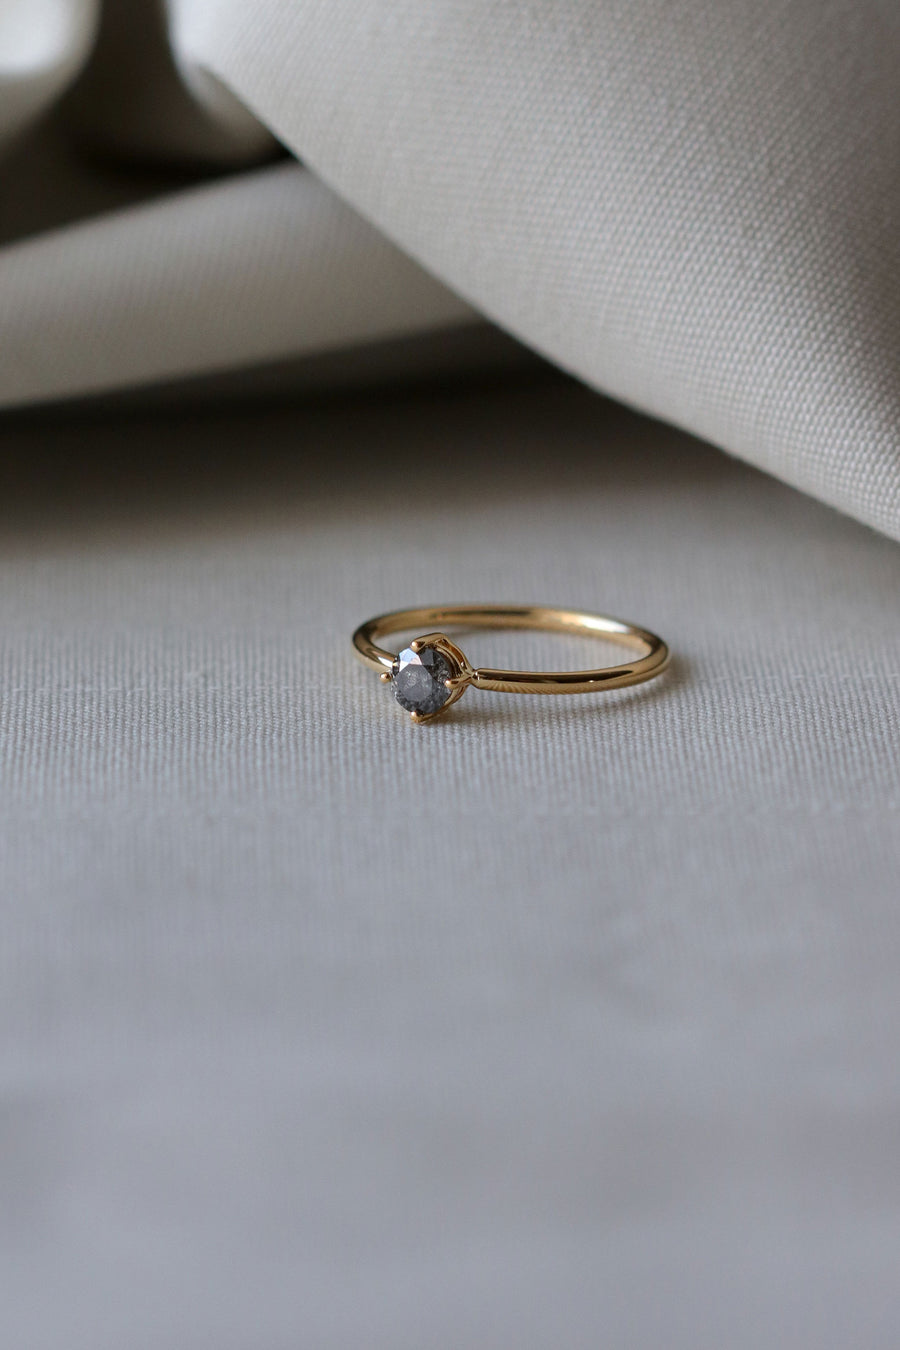 One-of-a-Kind Compass Ring - Round Salt and Pepper Diamond in 18k Gold